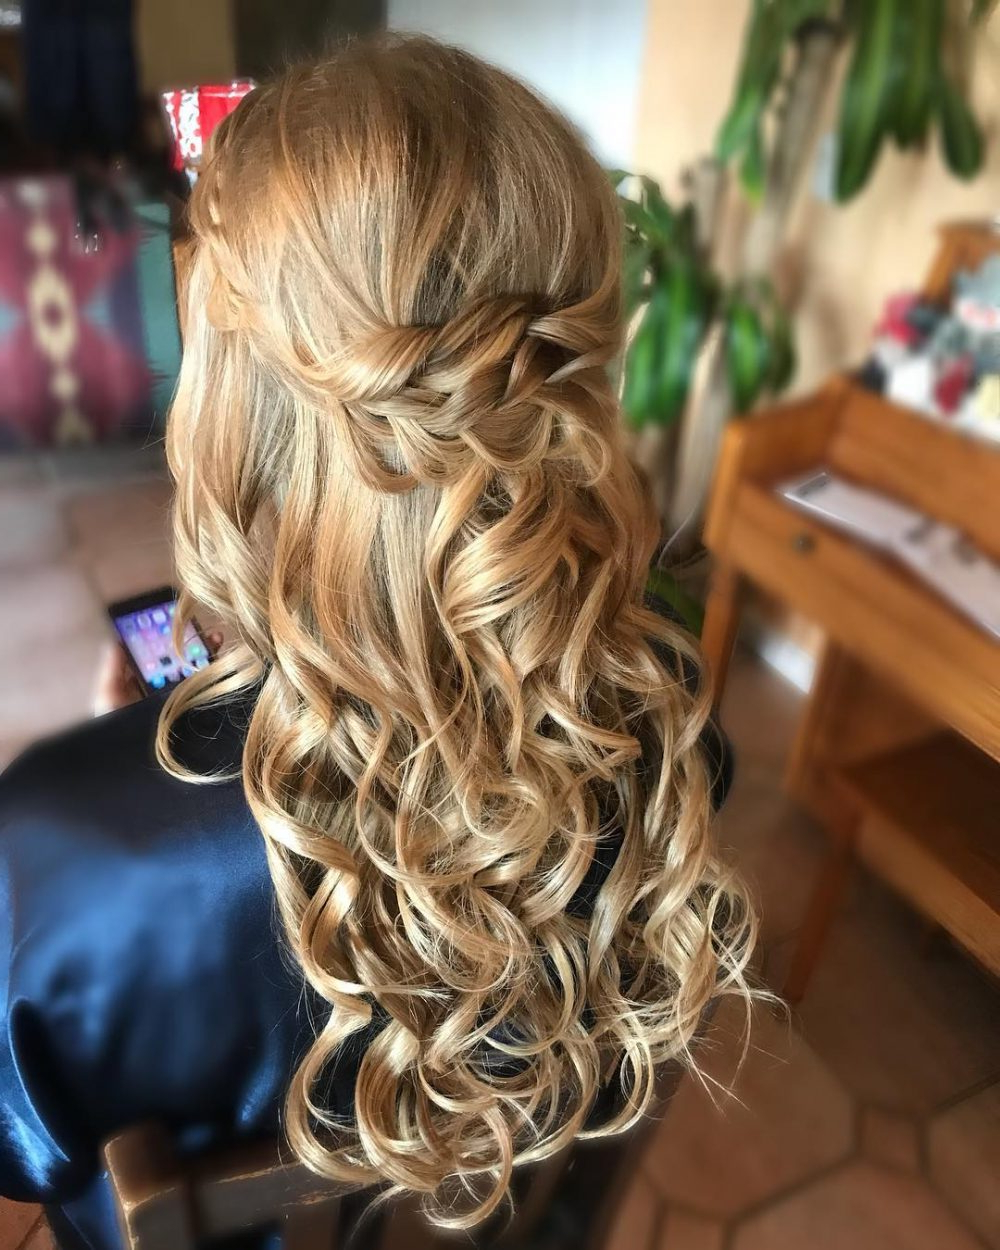 24 Gorgeous Wedding Hairstyles For Long Hair In 2019 Intended For Recent Voluminous Bridal Hairstyles (View 4 of 20)